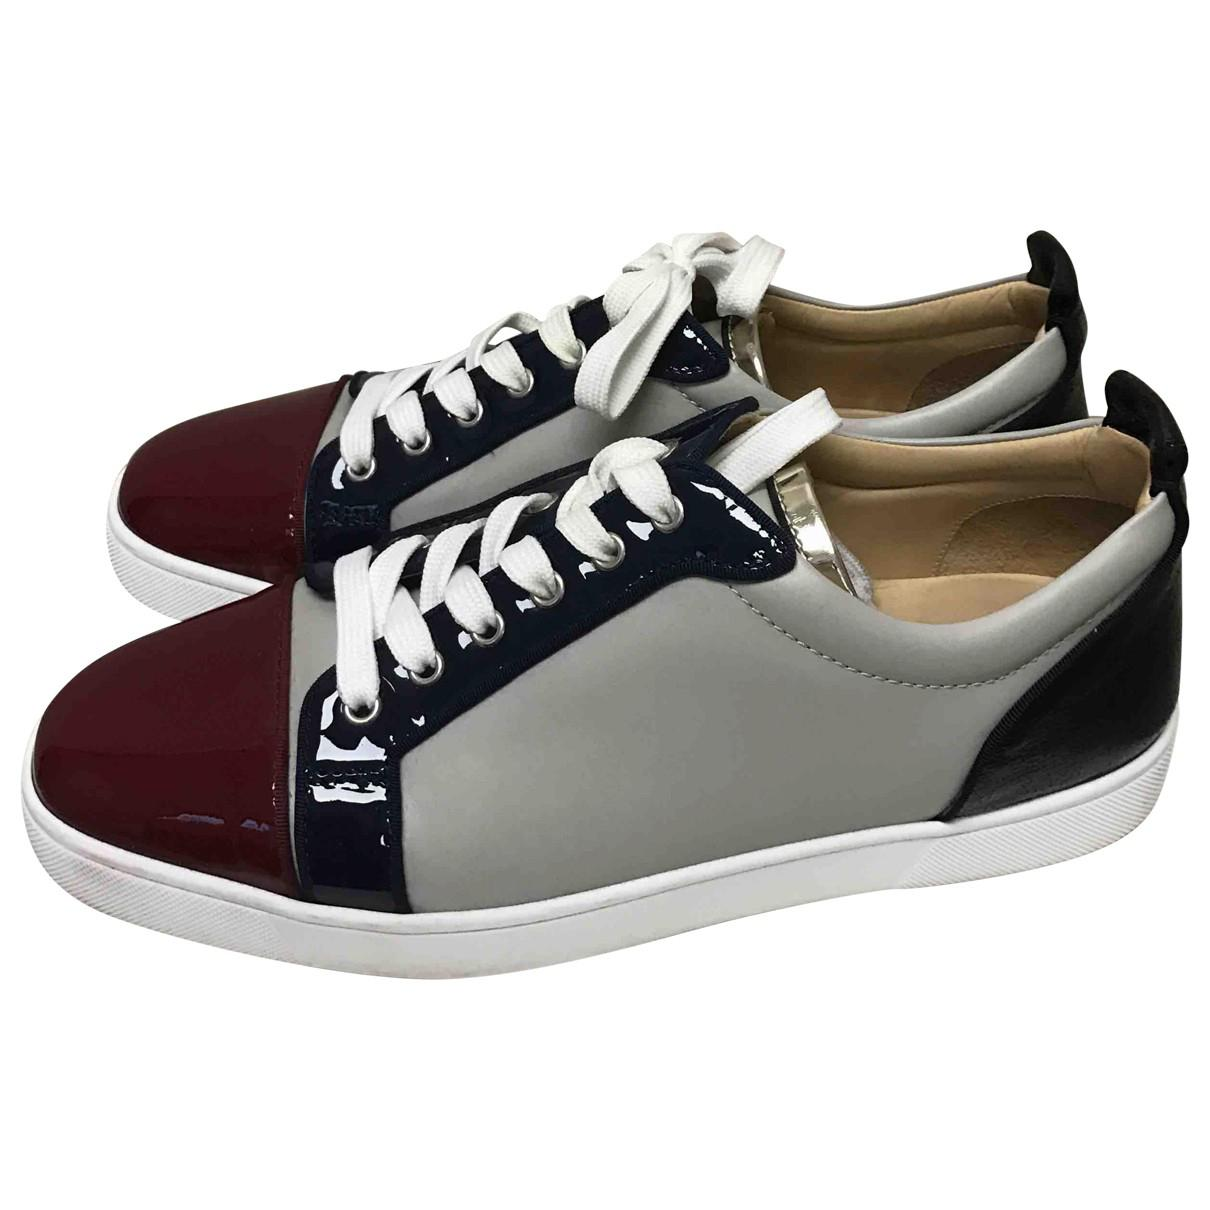 Pre-owned - Leather low trainers Christian Louboutin A4cj2sjkf